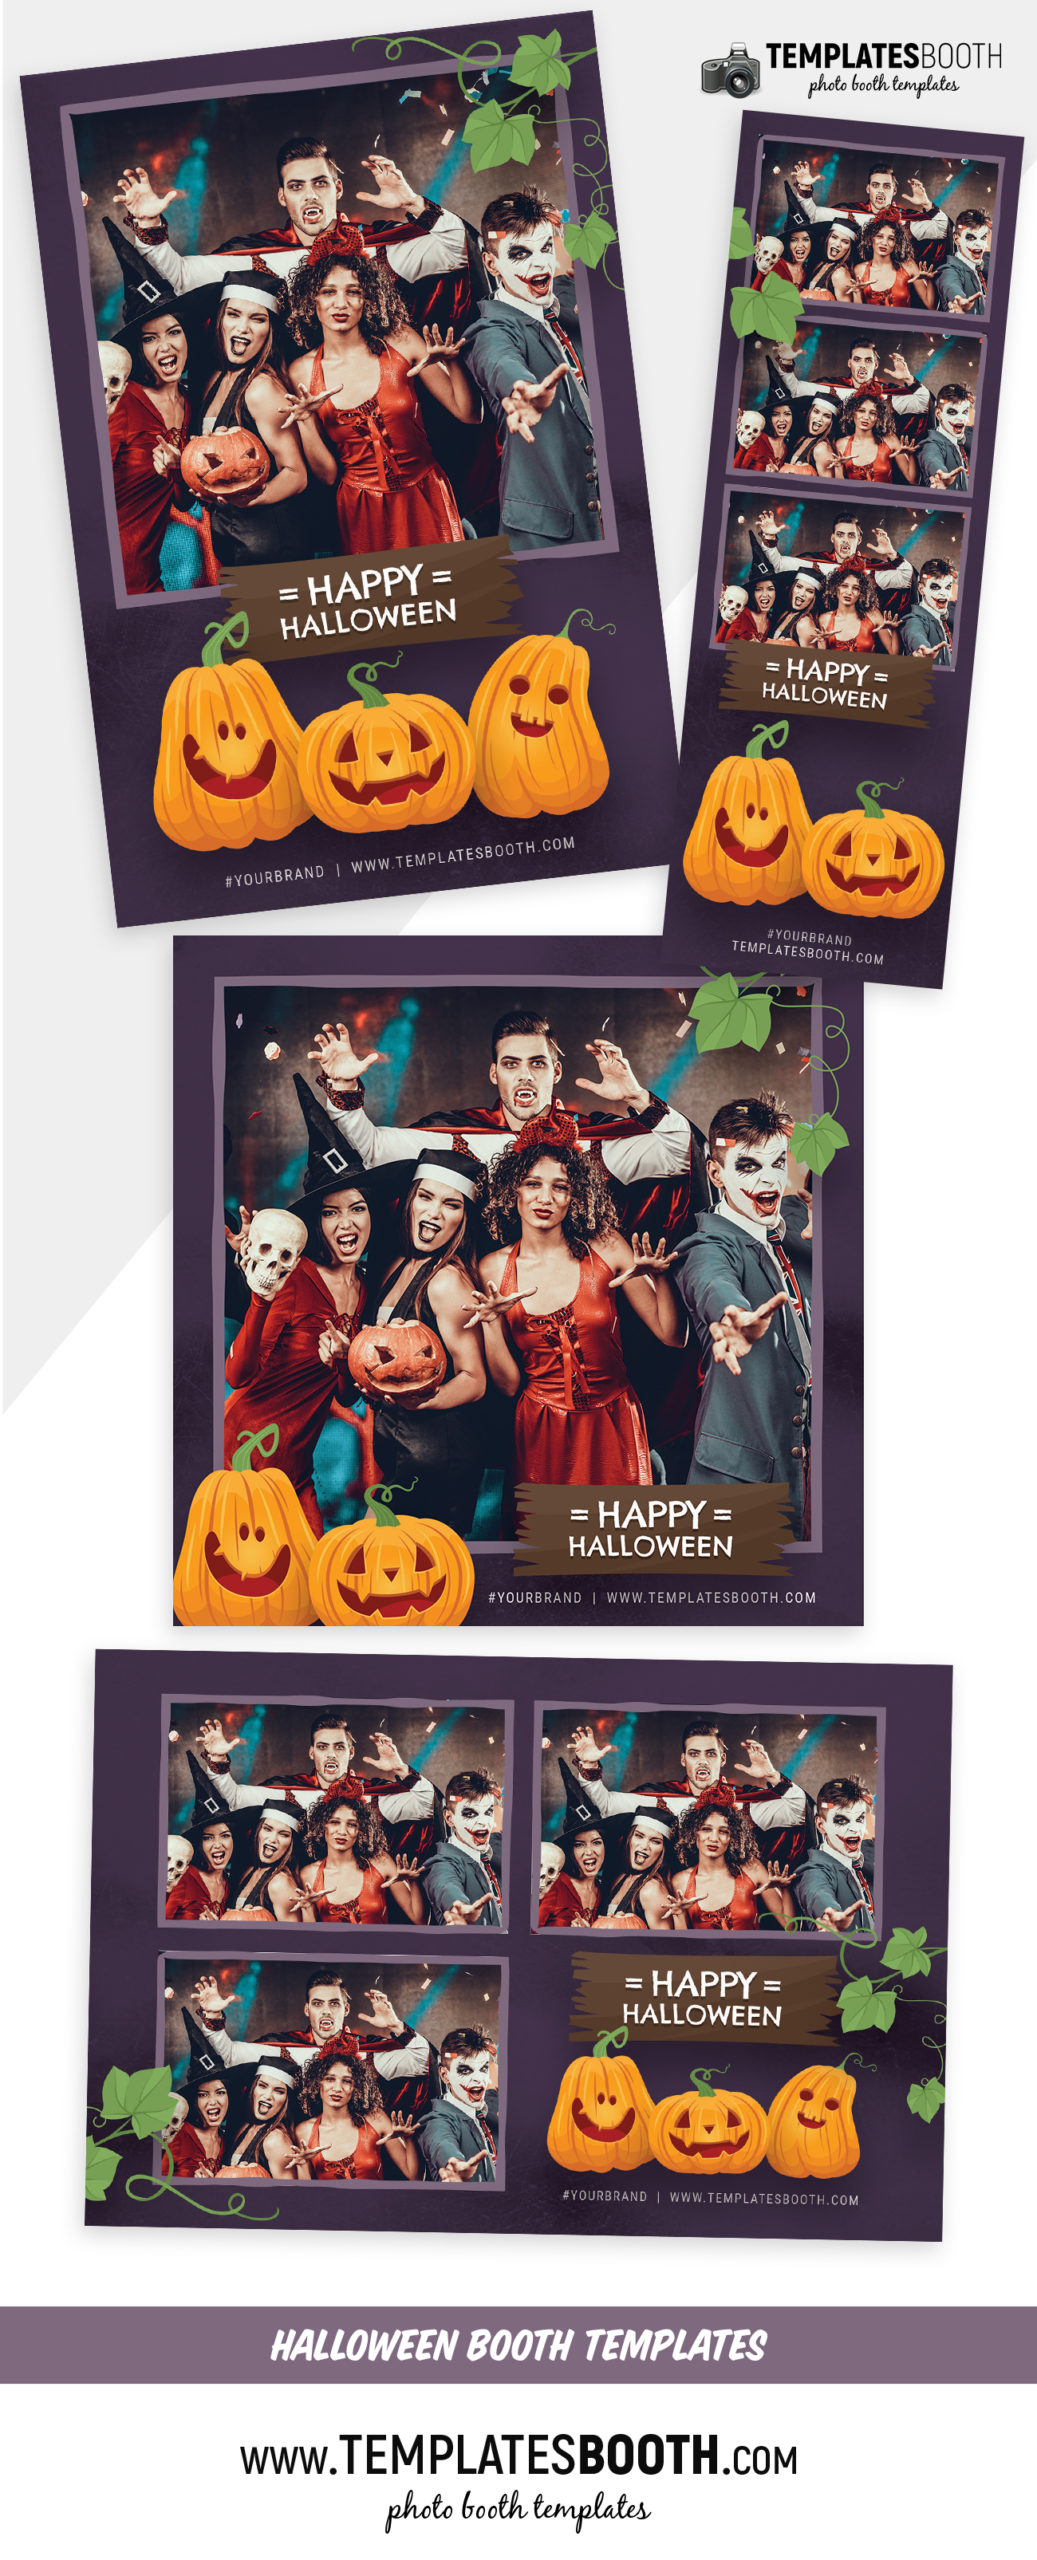 Purple Halloween Photo Booth Template (Full Preview)